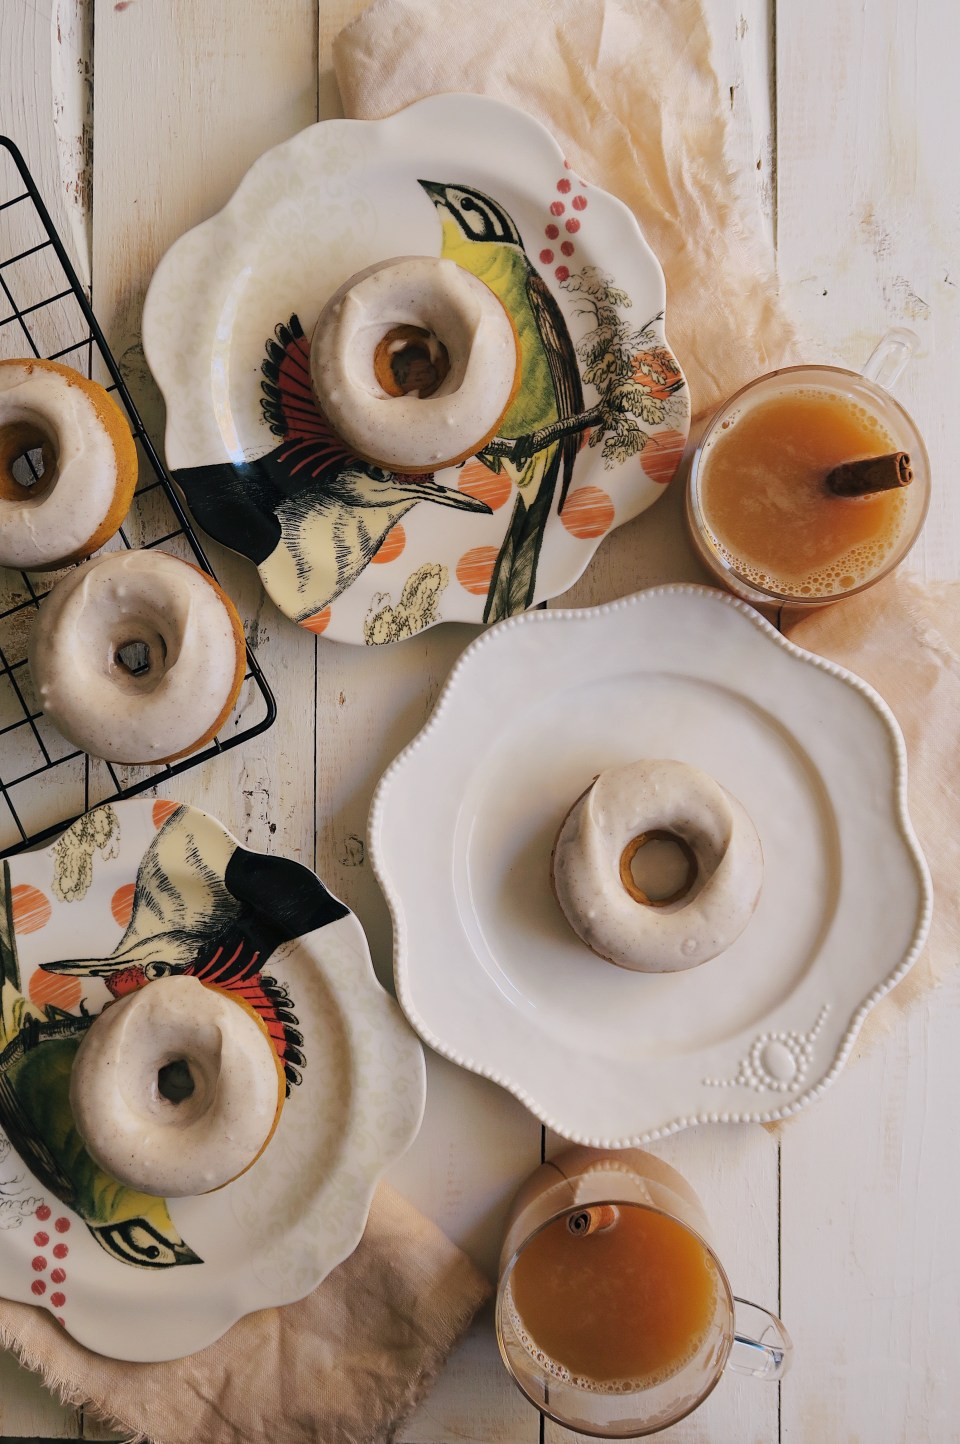 Pumpkin Spice Donut with Cinnamon Cream Glaze